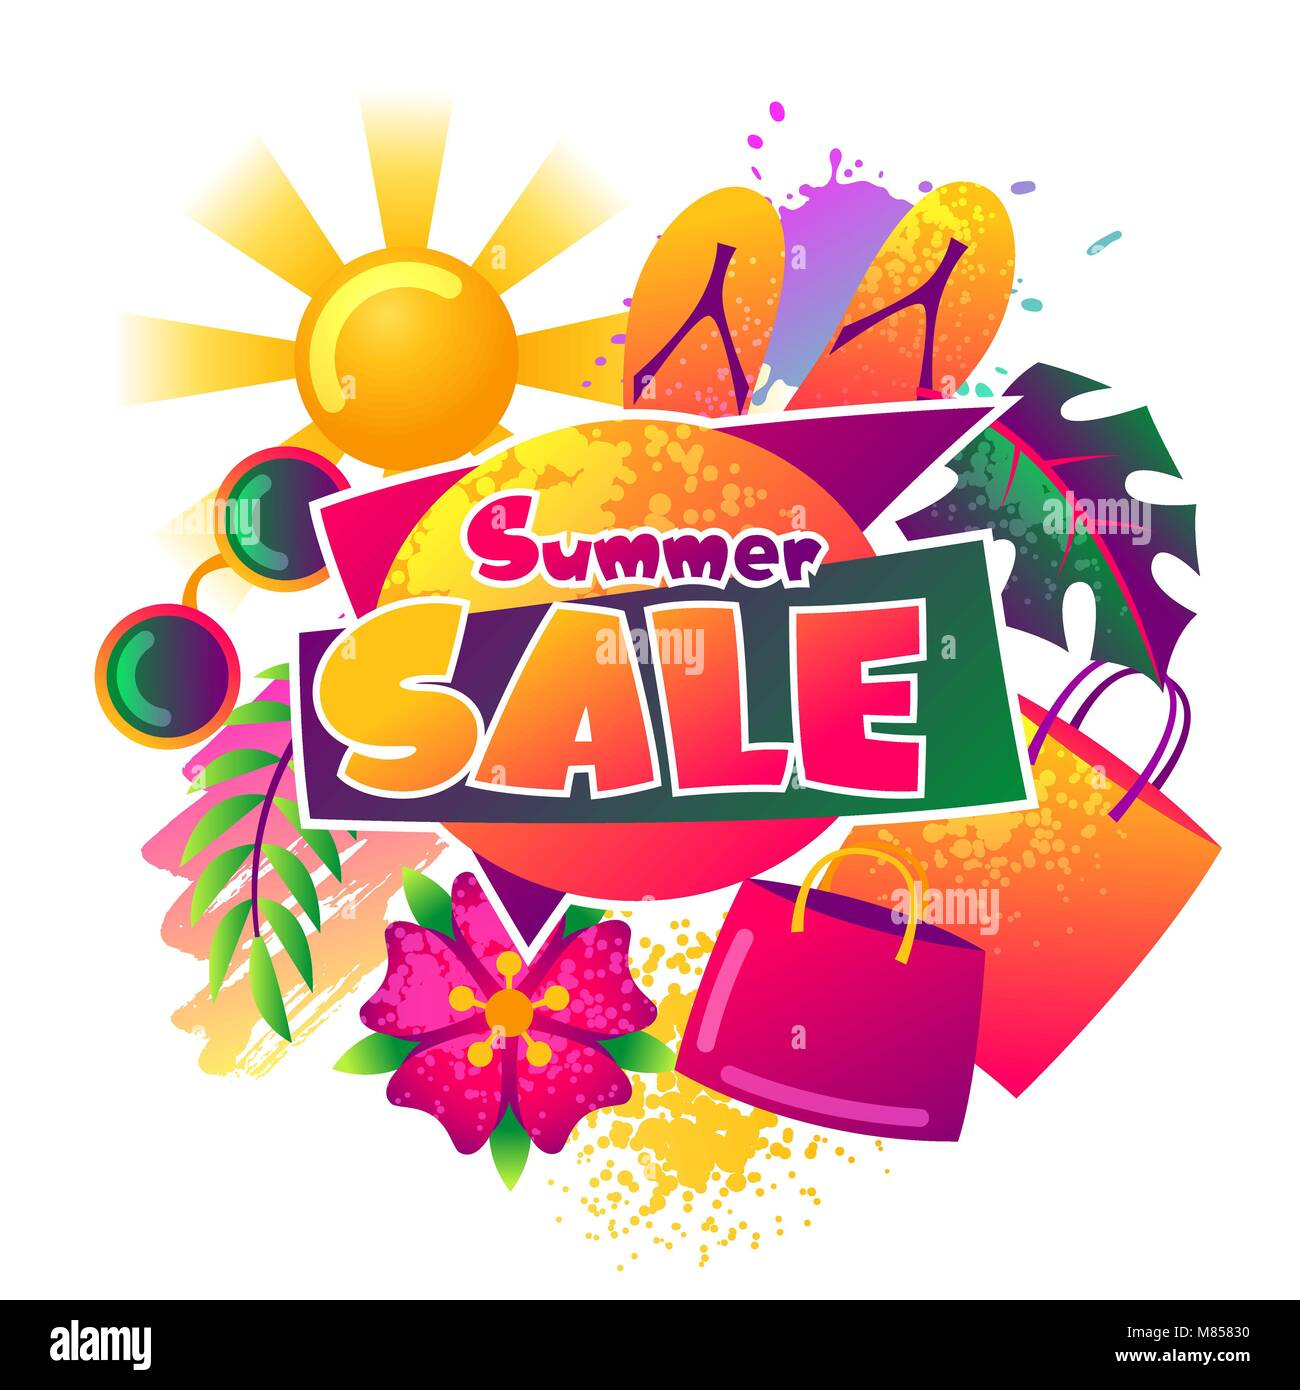 Summer sale background with colorful elements. Sun, palm leaves and shopping bags - Stock Image